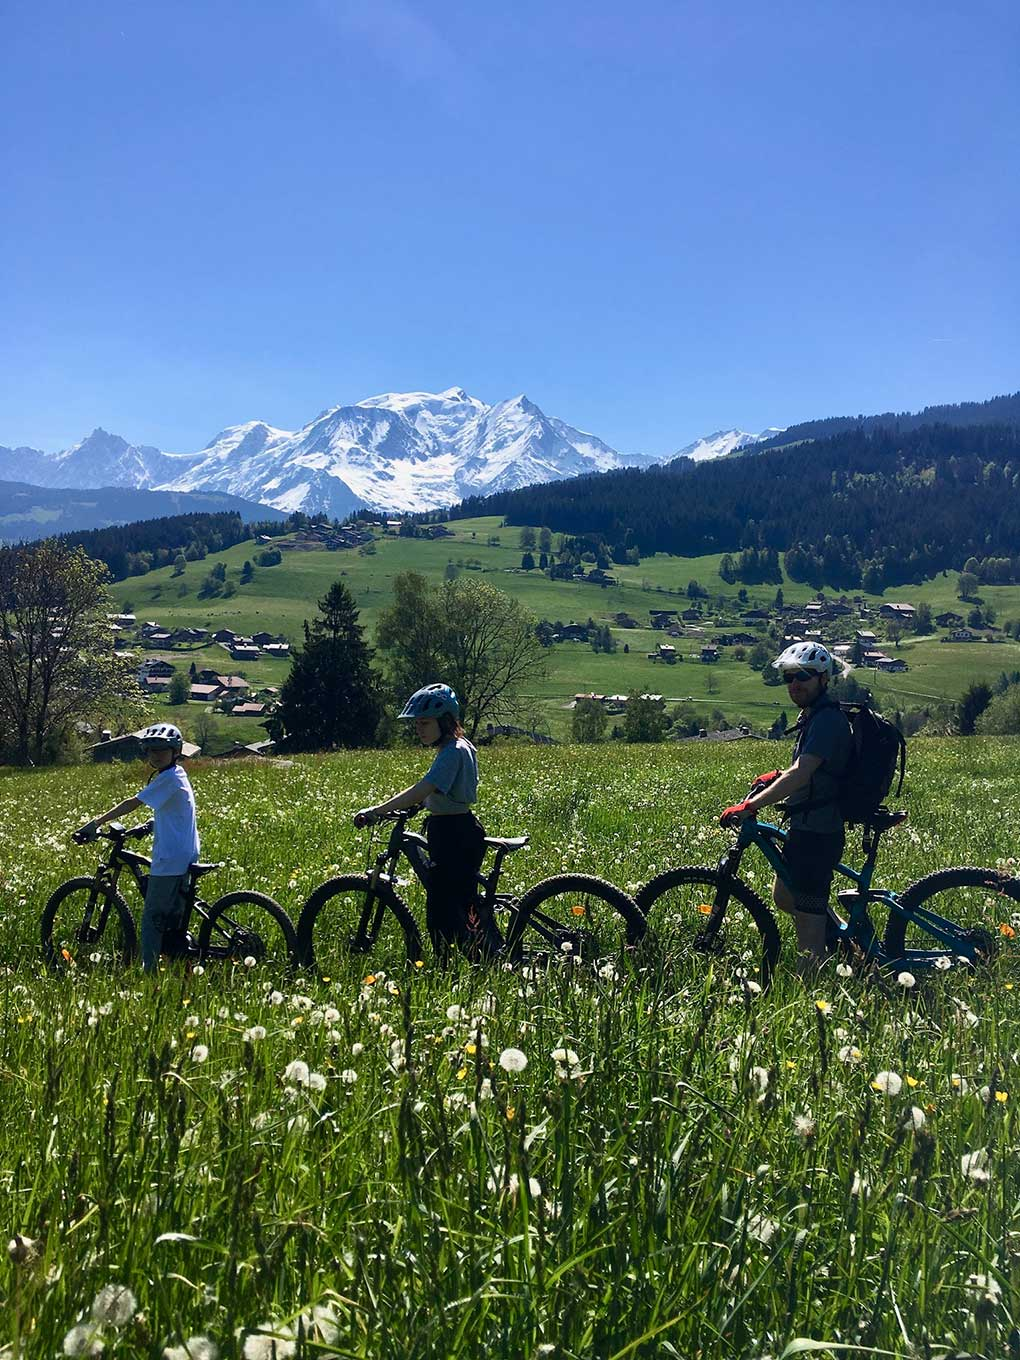 Family on electric mountain bikes in the middle of a field of yellow flowers